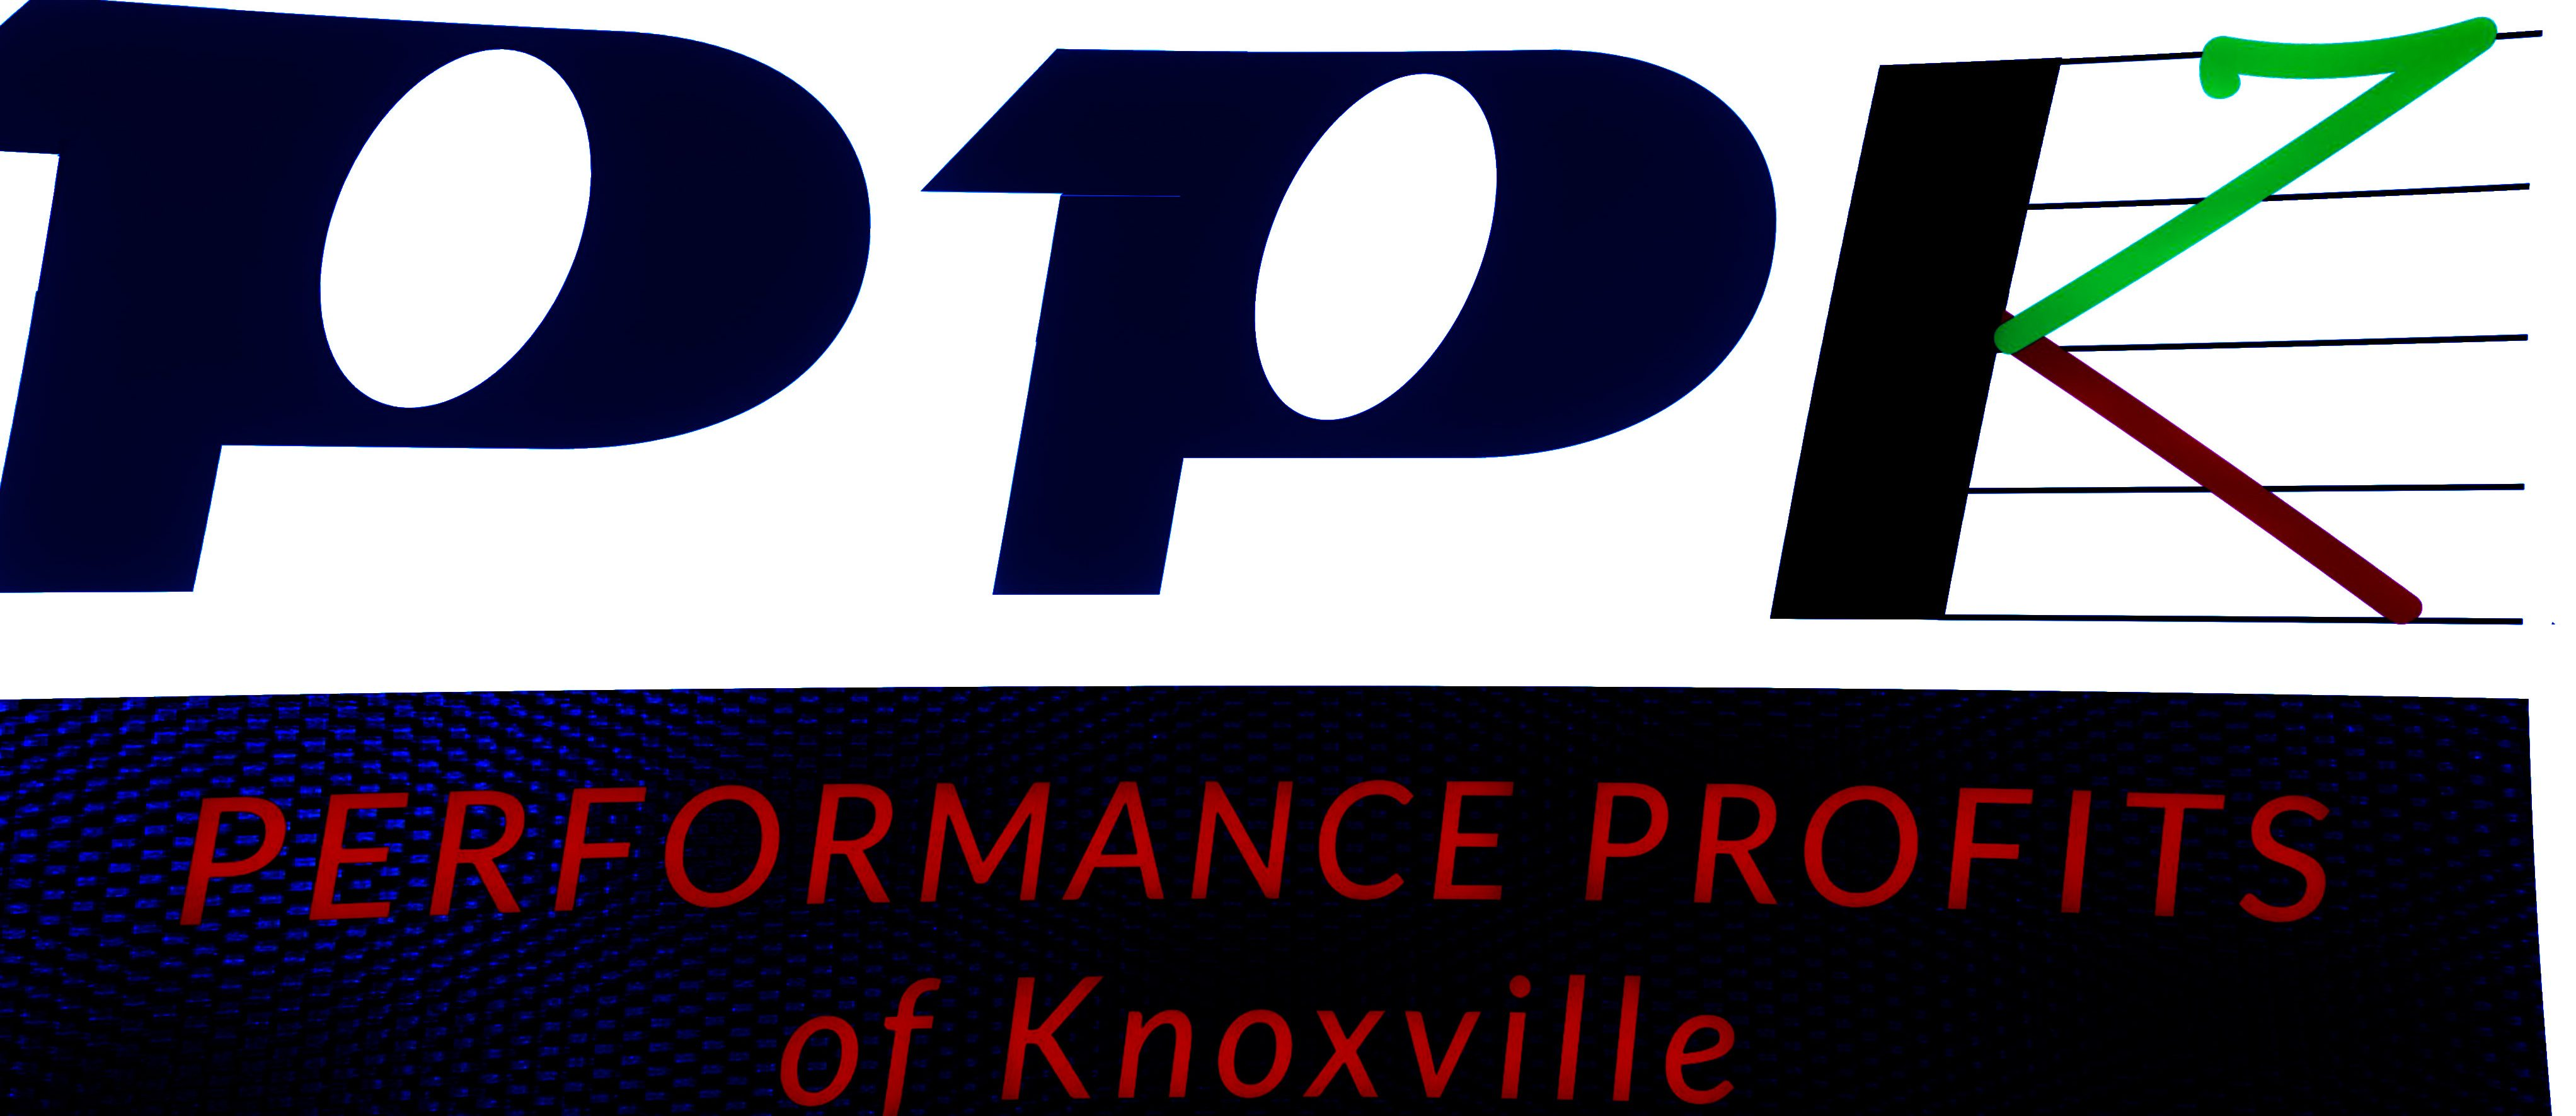 Performance Profits of Knoxville